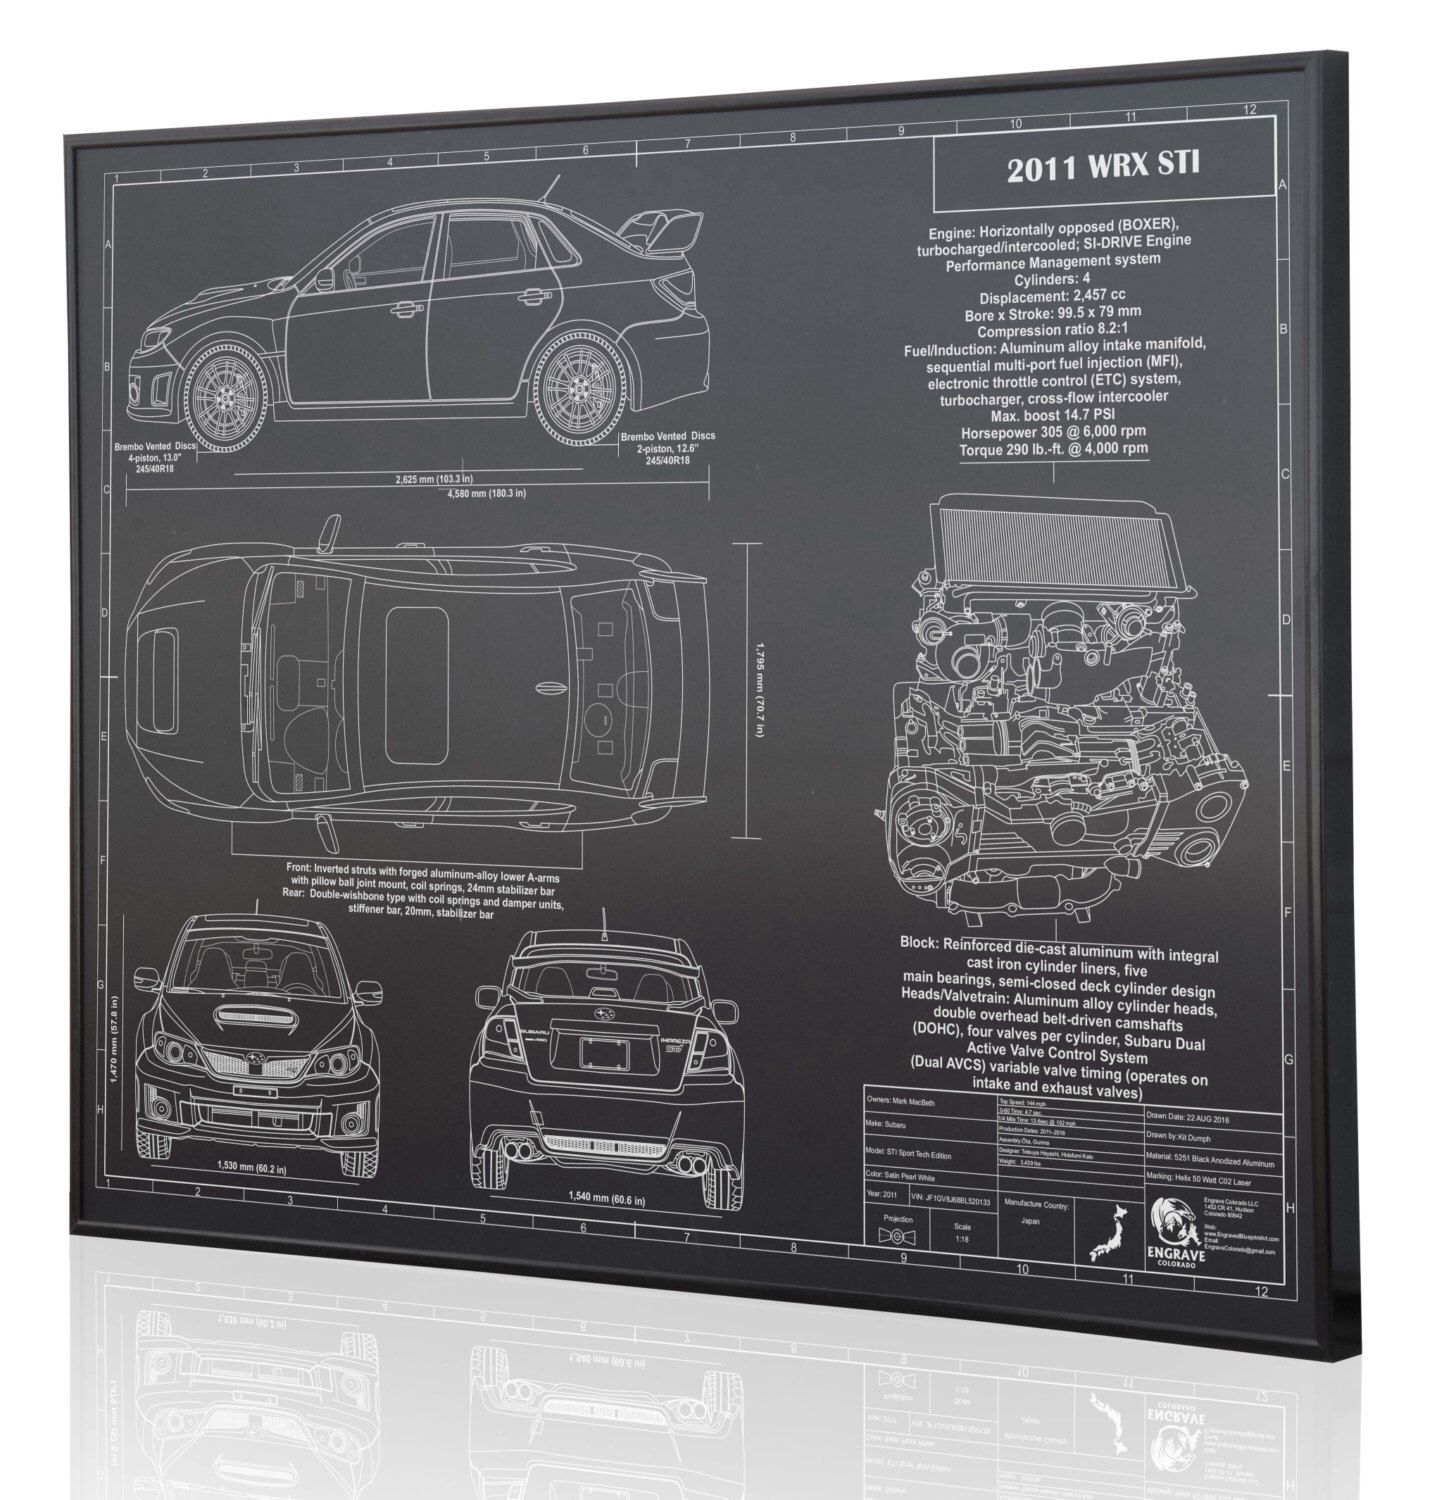 Subaru 2011 Wrx Sti Laser Engraved Wall Art Poster On 2 Engine Timing Diagram Metal Acrylic Or